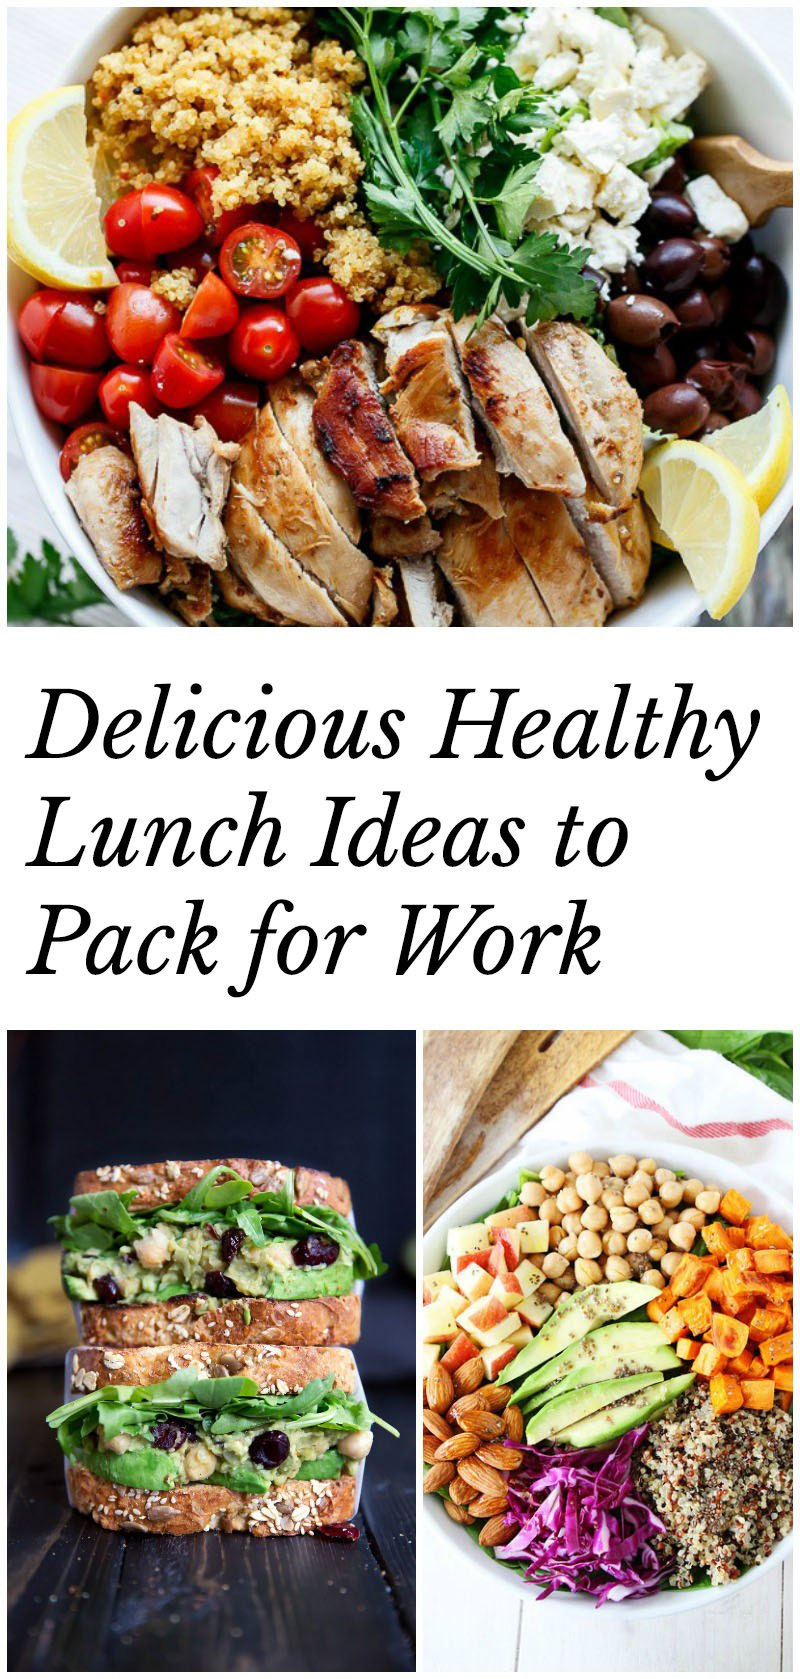 Delicious healthy lunch ideas to pack for work -- lots of salads & sandwich options to keep you motivated to eat healthy.